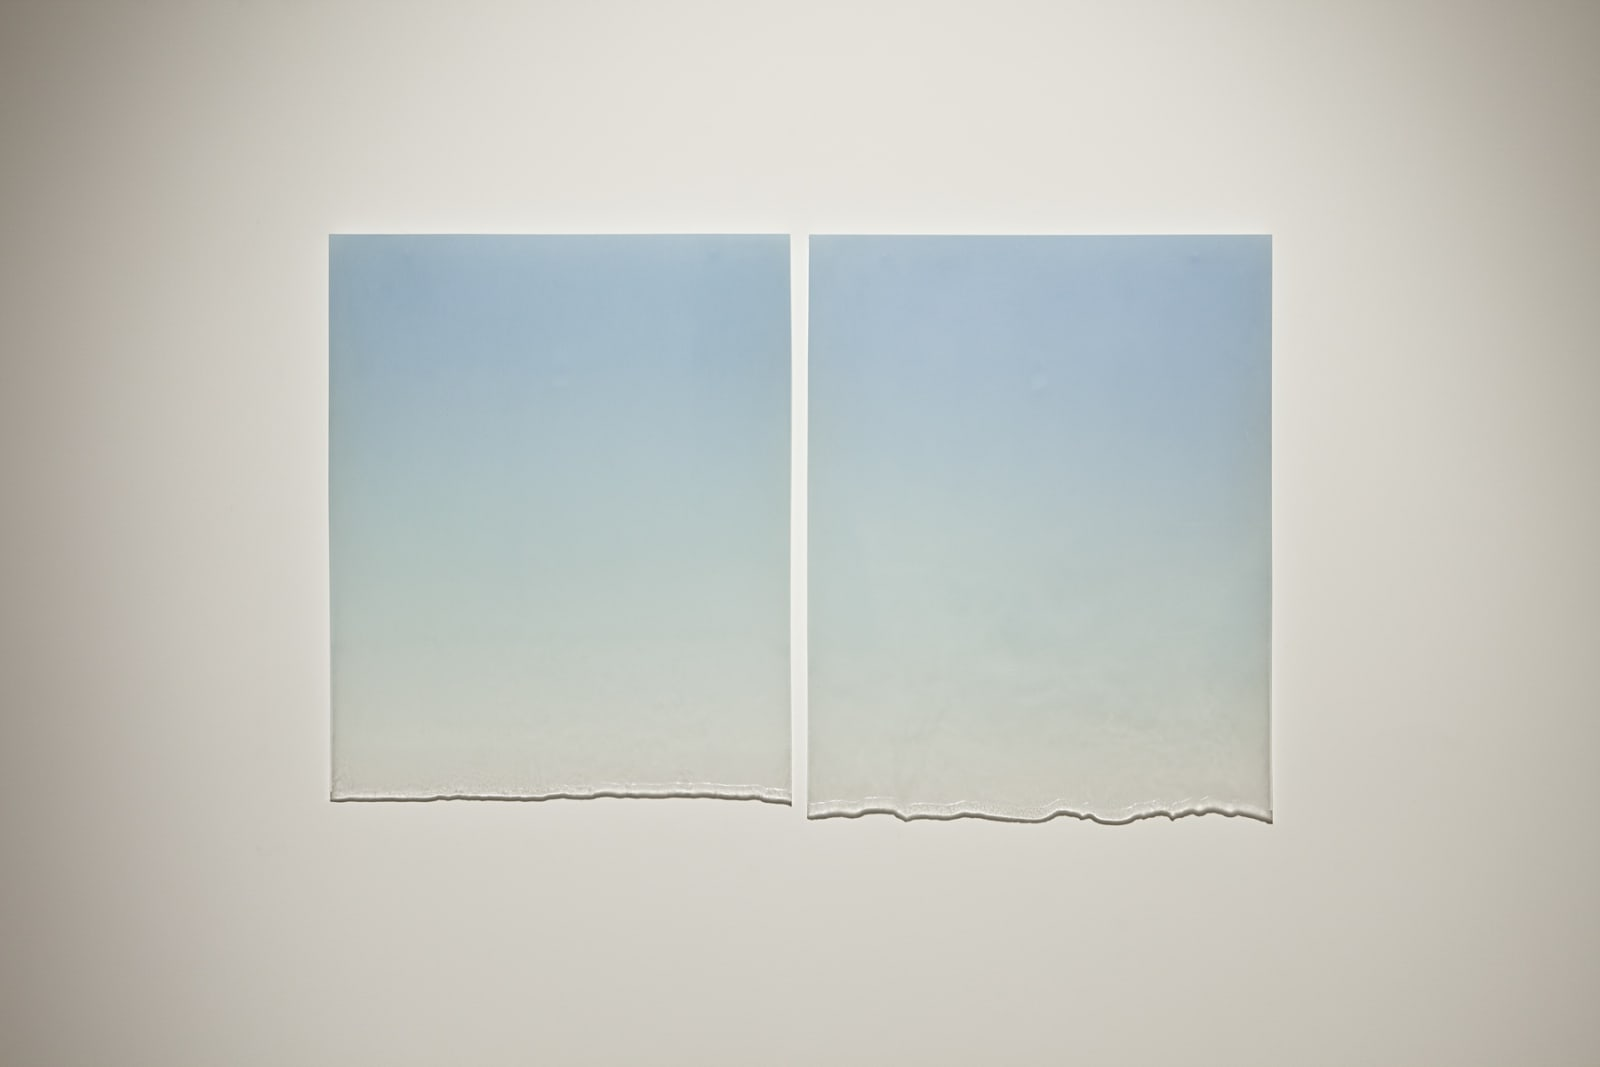 Peter Alexander, Mary Corse, Robert Irwin | New Out West